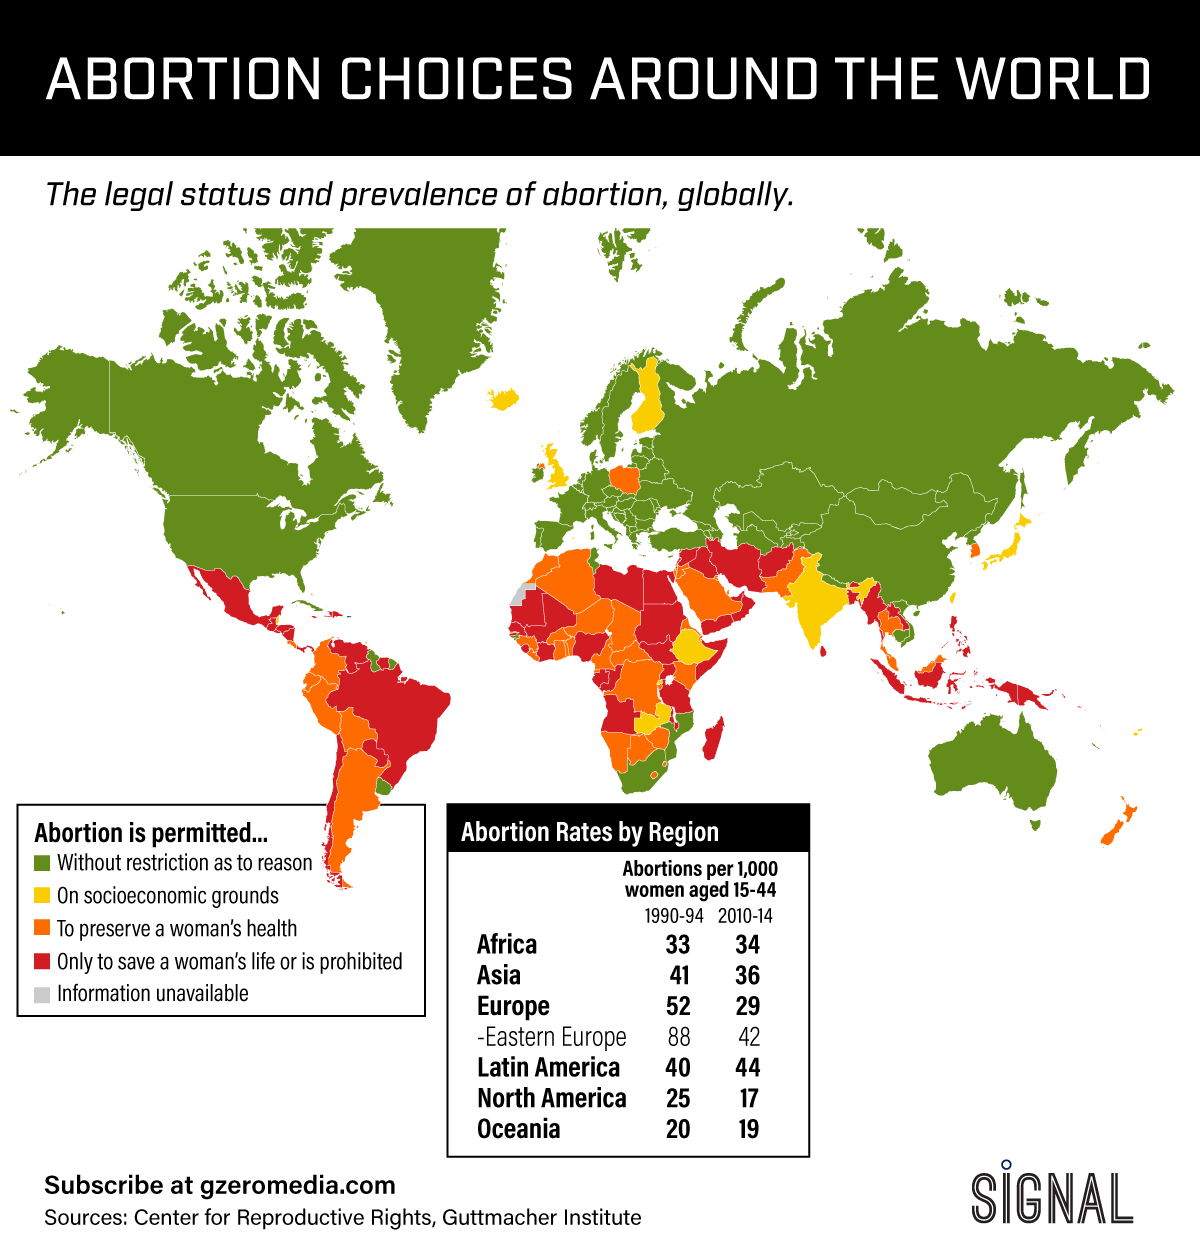 Graphic Truth: Abortion Choices Around the World